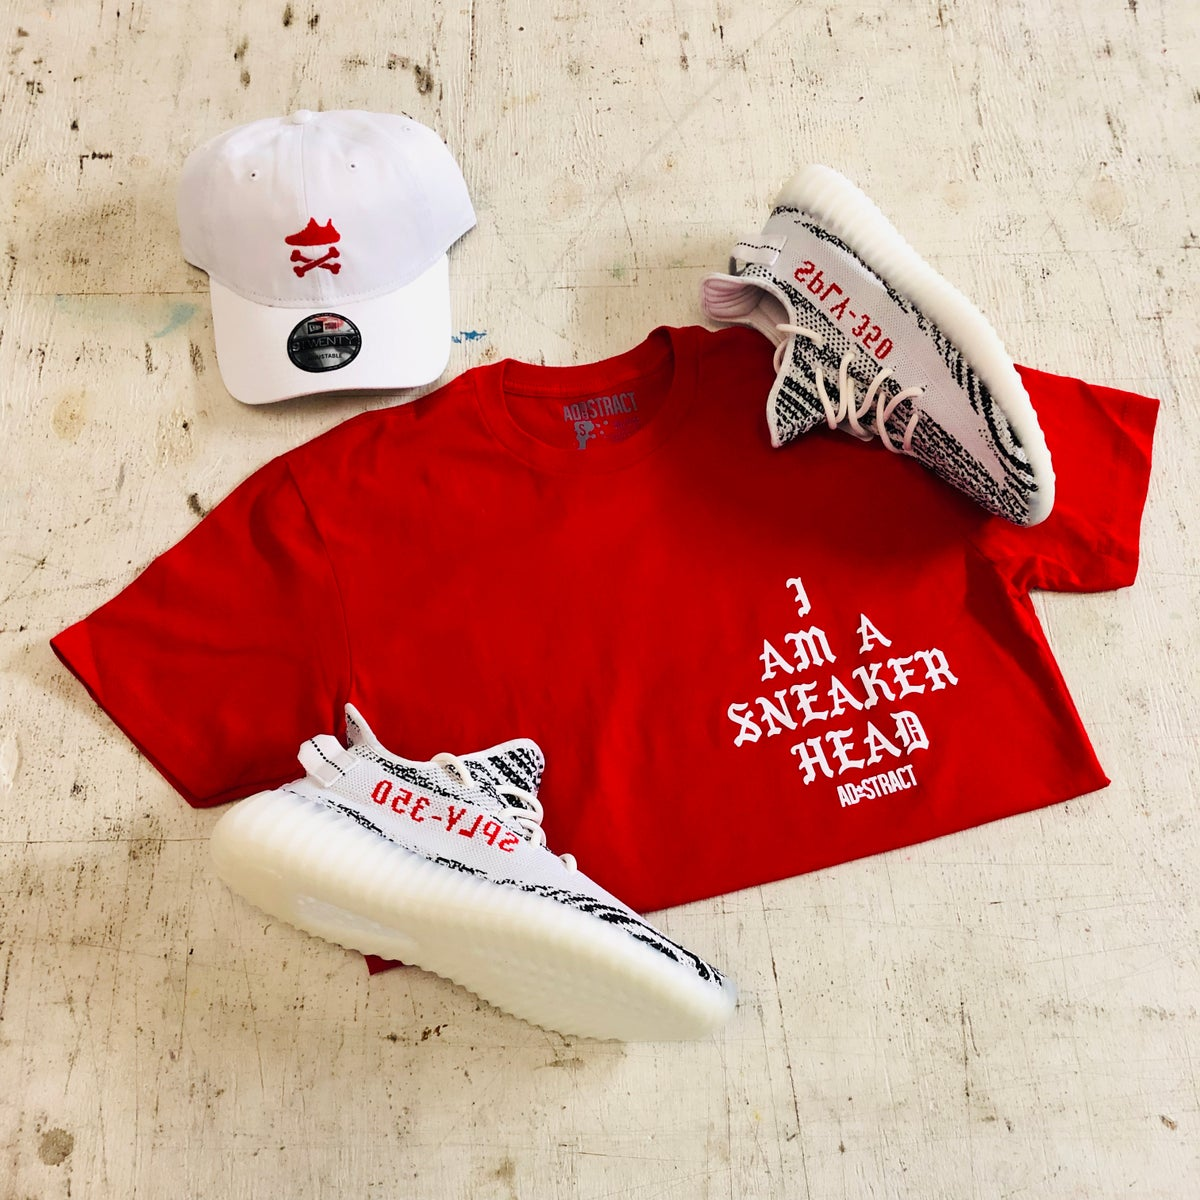 Image of I AM A SNEAKERHEAD (RED/WHITE) TSHIRT OR HOODY